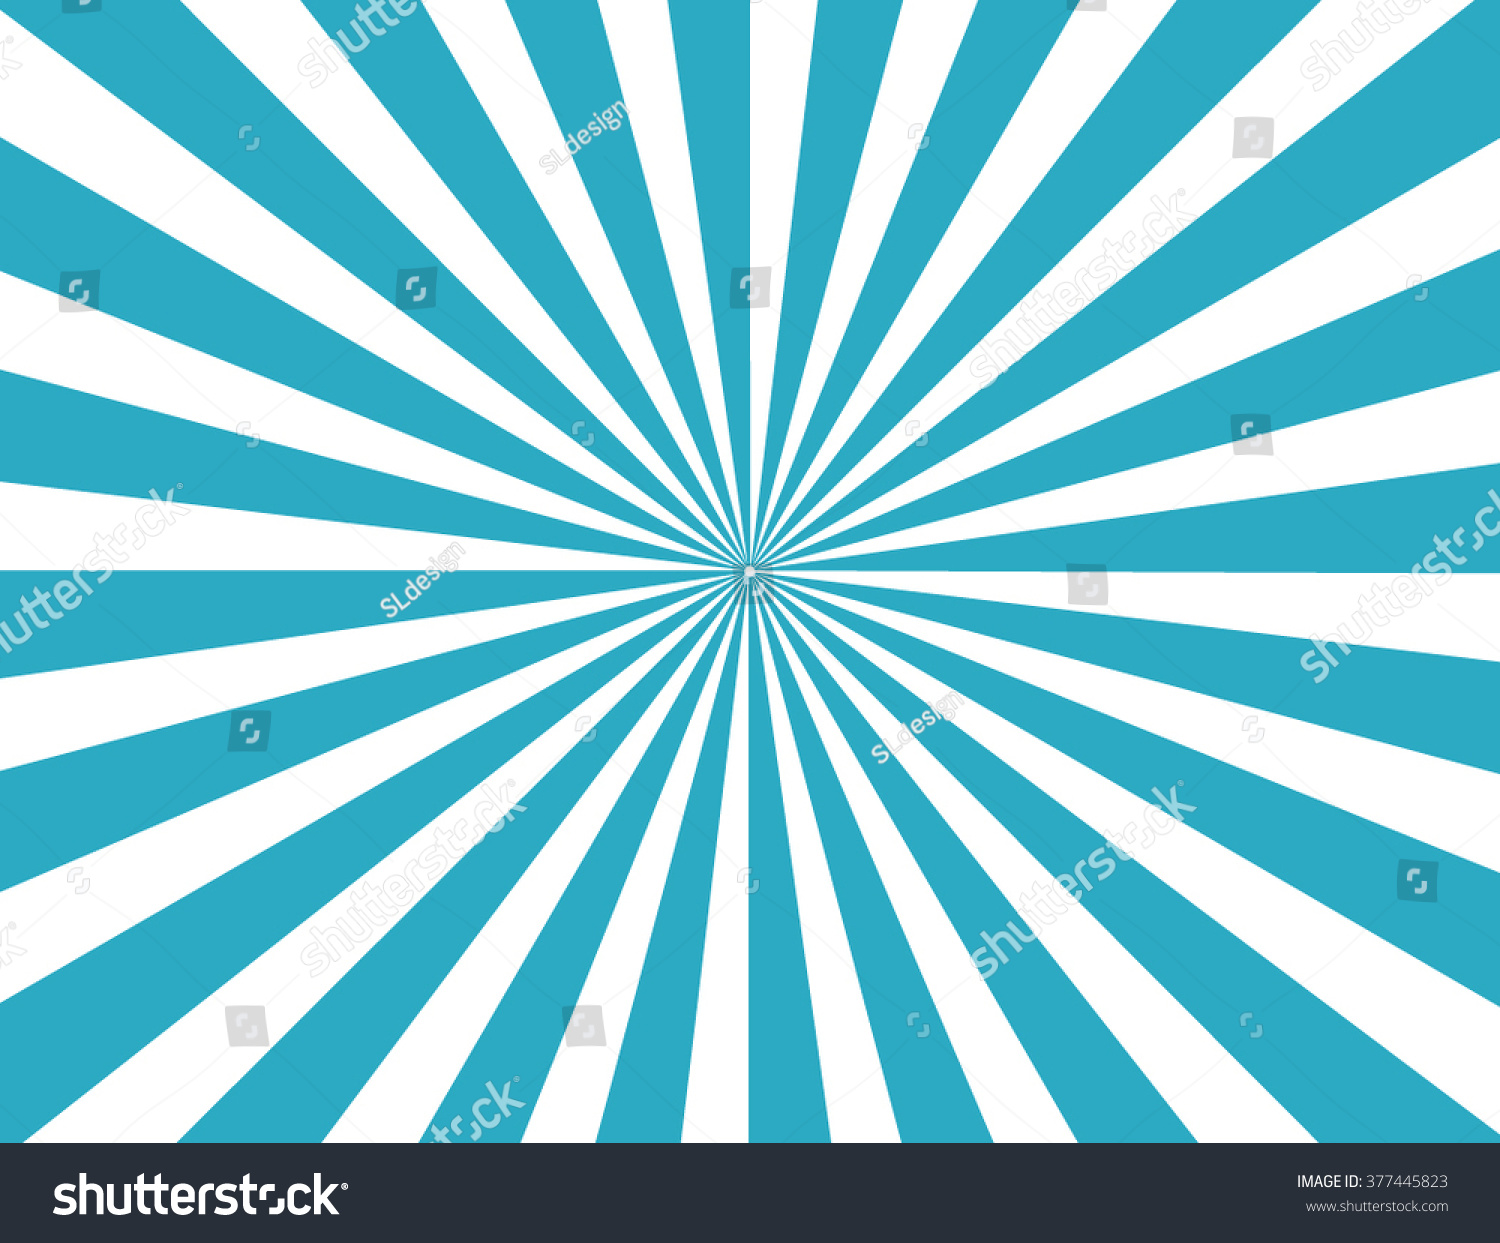 Shutterstock Vectors free download